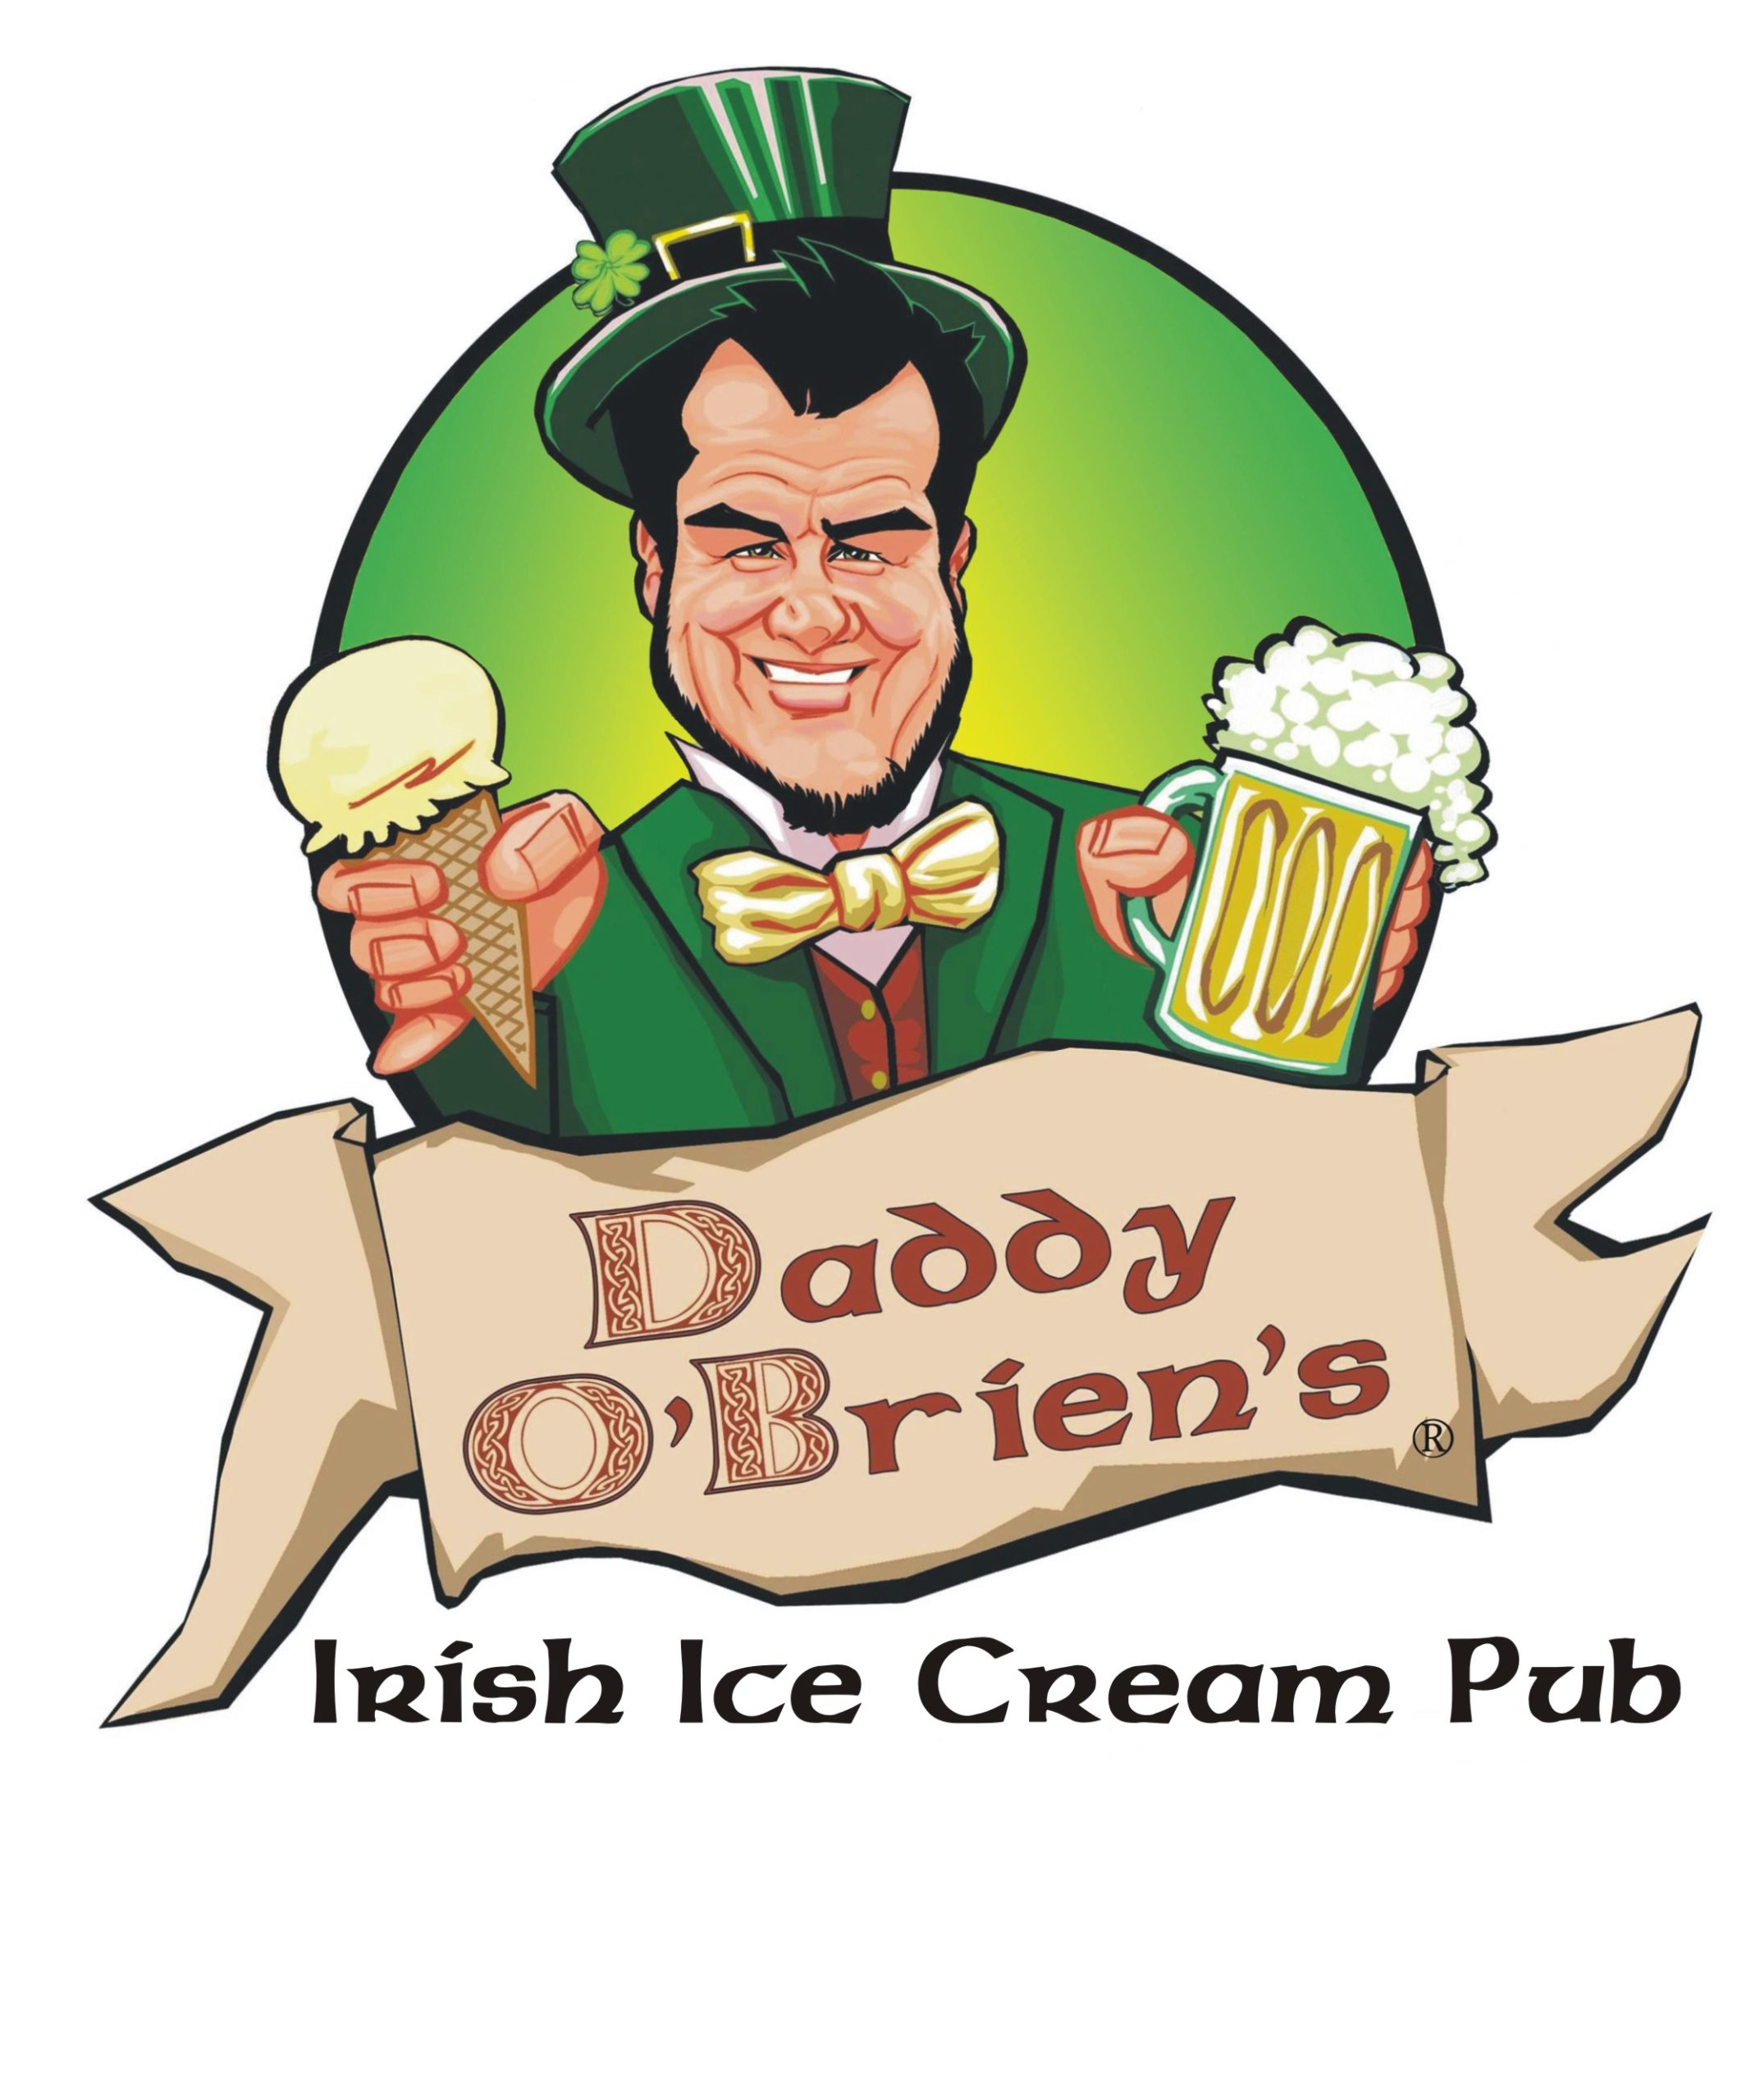 Doddy-OBrien-with-pub-lettering